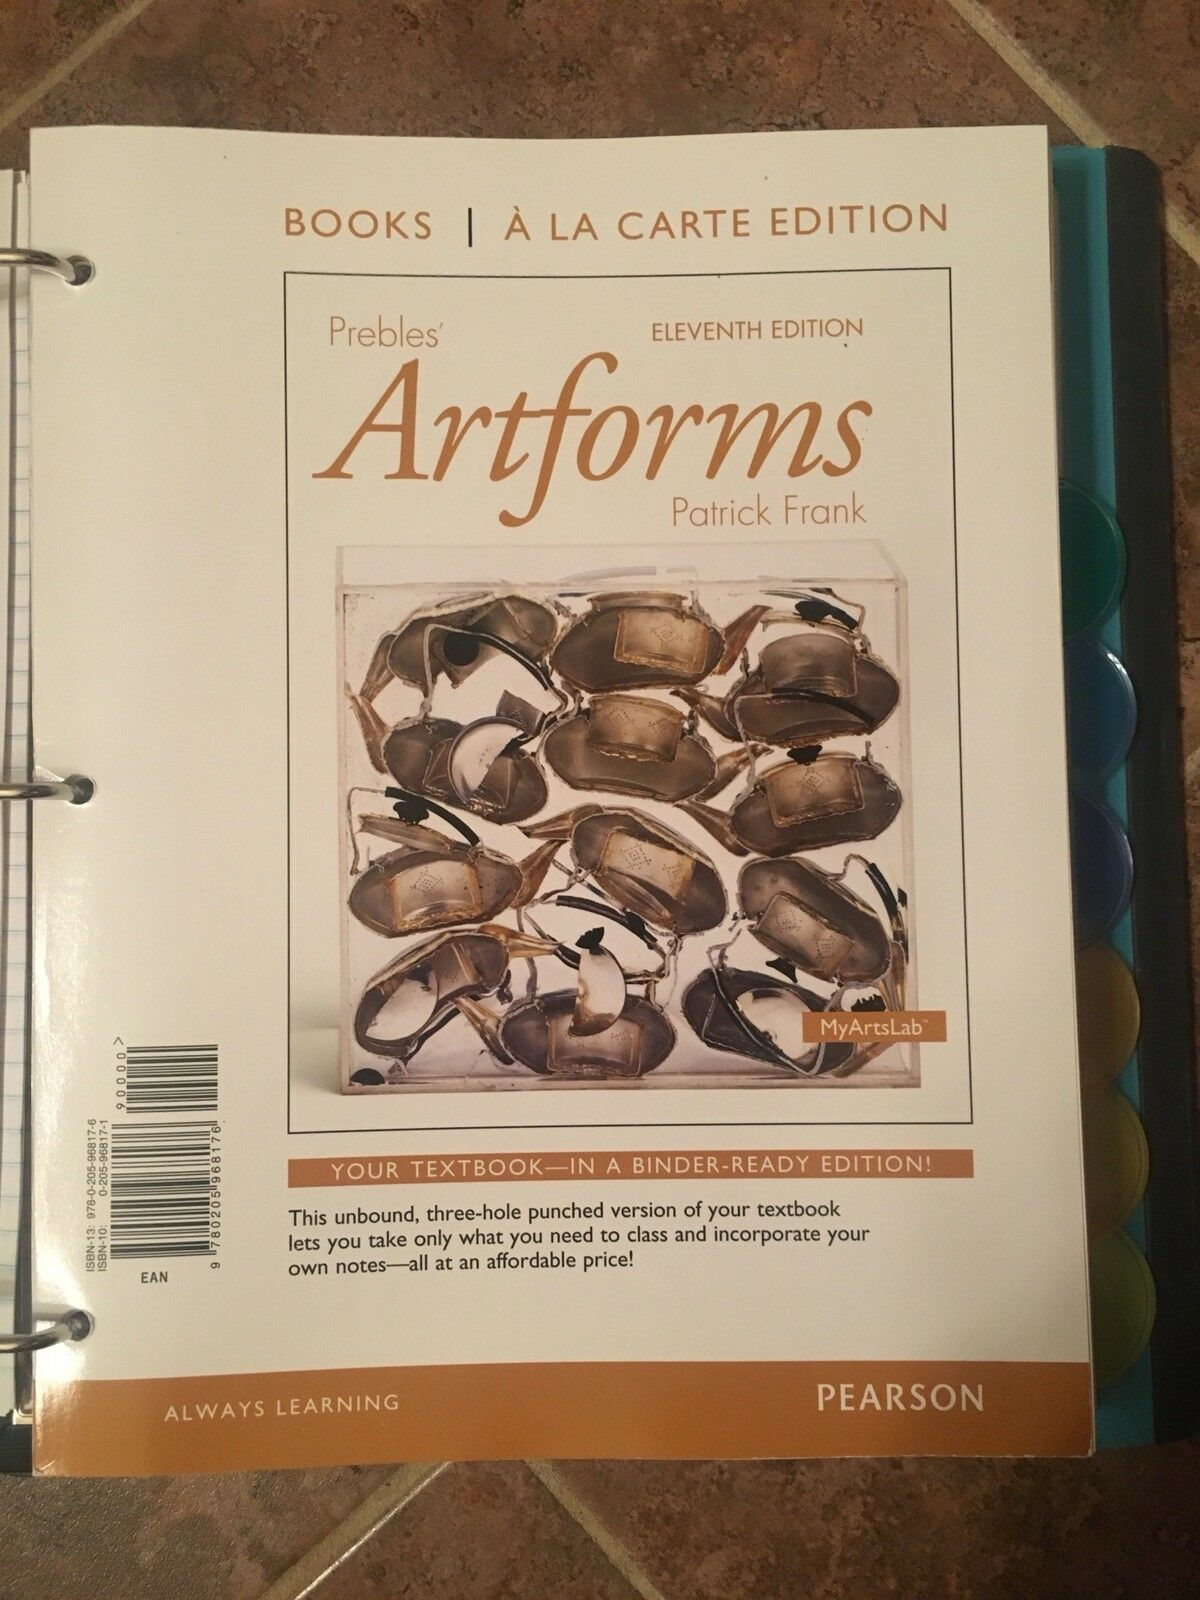 Prebles artforms by patrick frank duane preble and sarah preble prebles artforms by patrick frank duane preble and sarah preble 2013 paperback 11th edition ebay fandeluxe Gallery